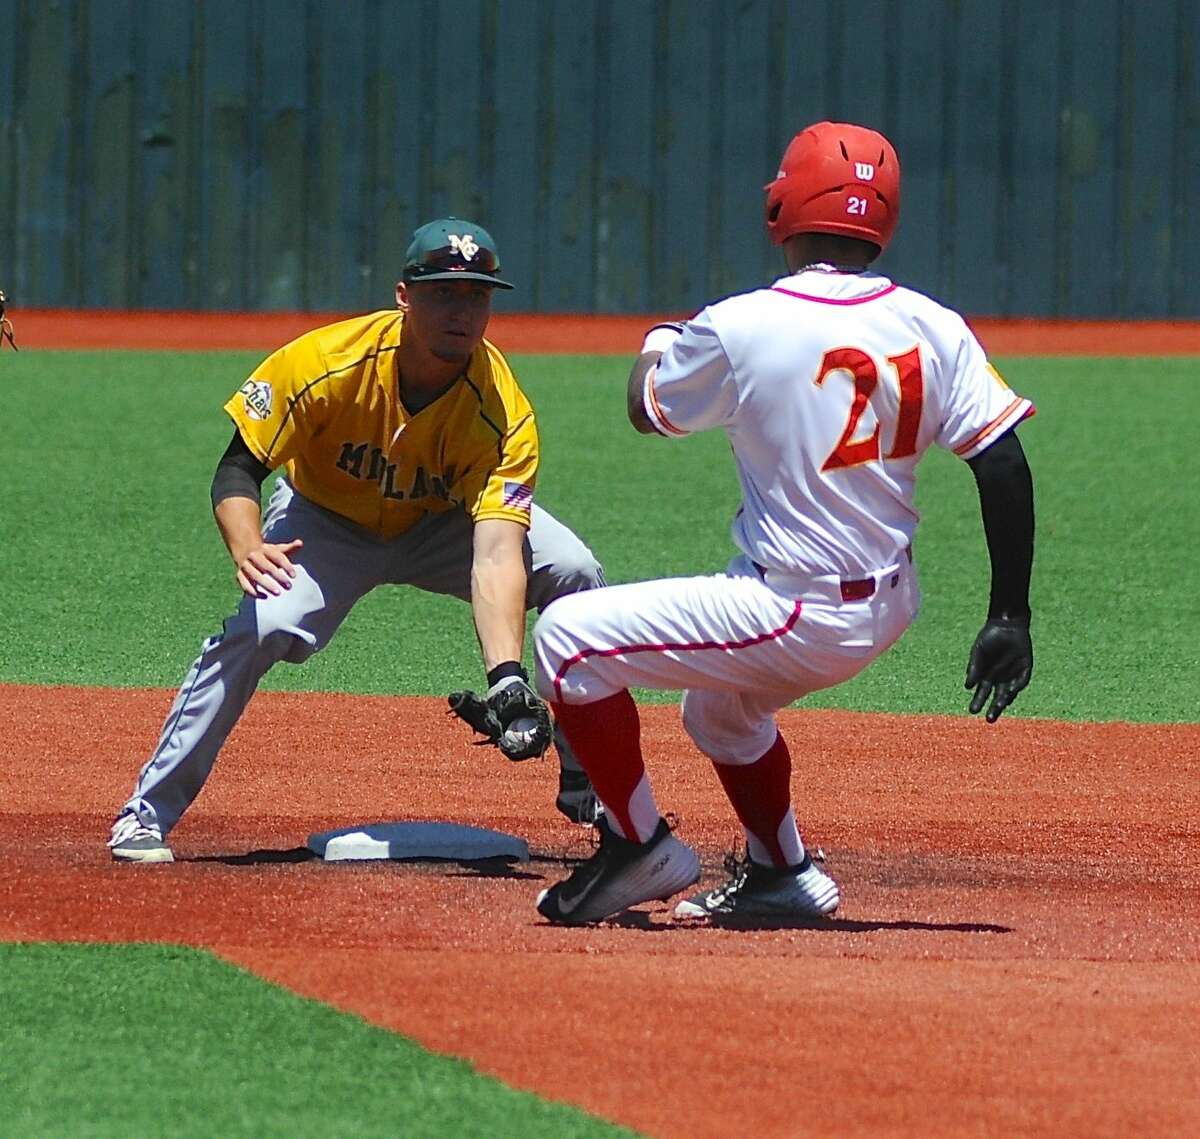 Midland College second baseman Chris Thibideau tags out New Mexico Junior College's Angel Vega in the first game of a doubleheader in Hobbs, N.M. Clayton Jones/Hobbs News-Sun